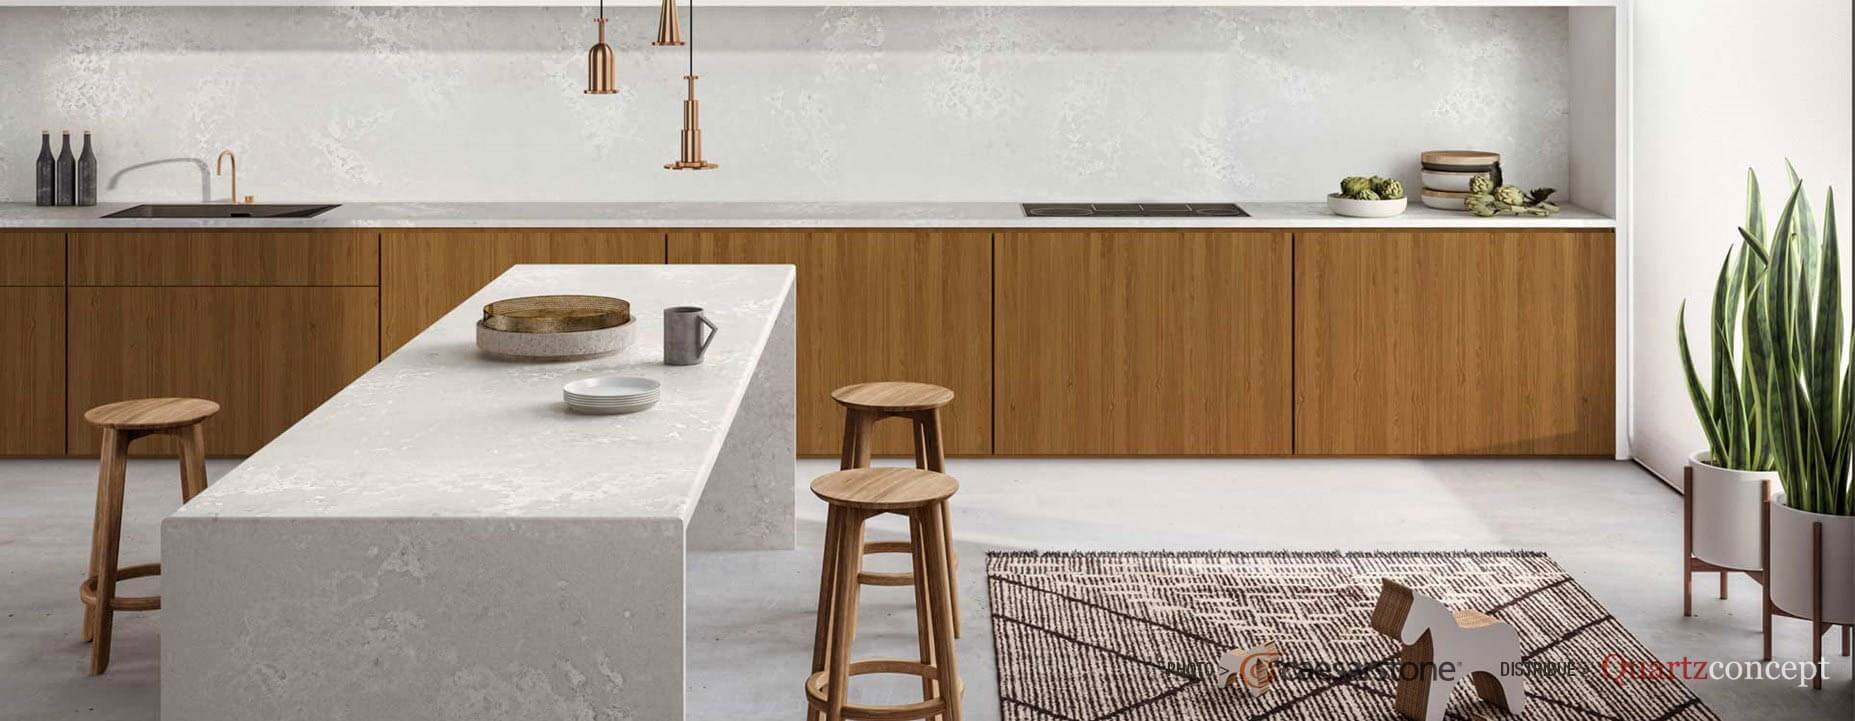 Quartz Caesarstone couleur 4011 cloudburst concrete